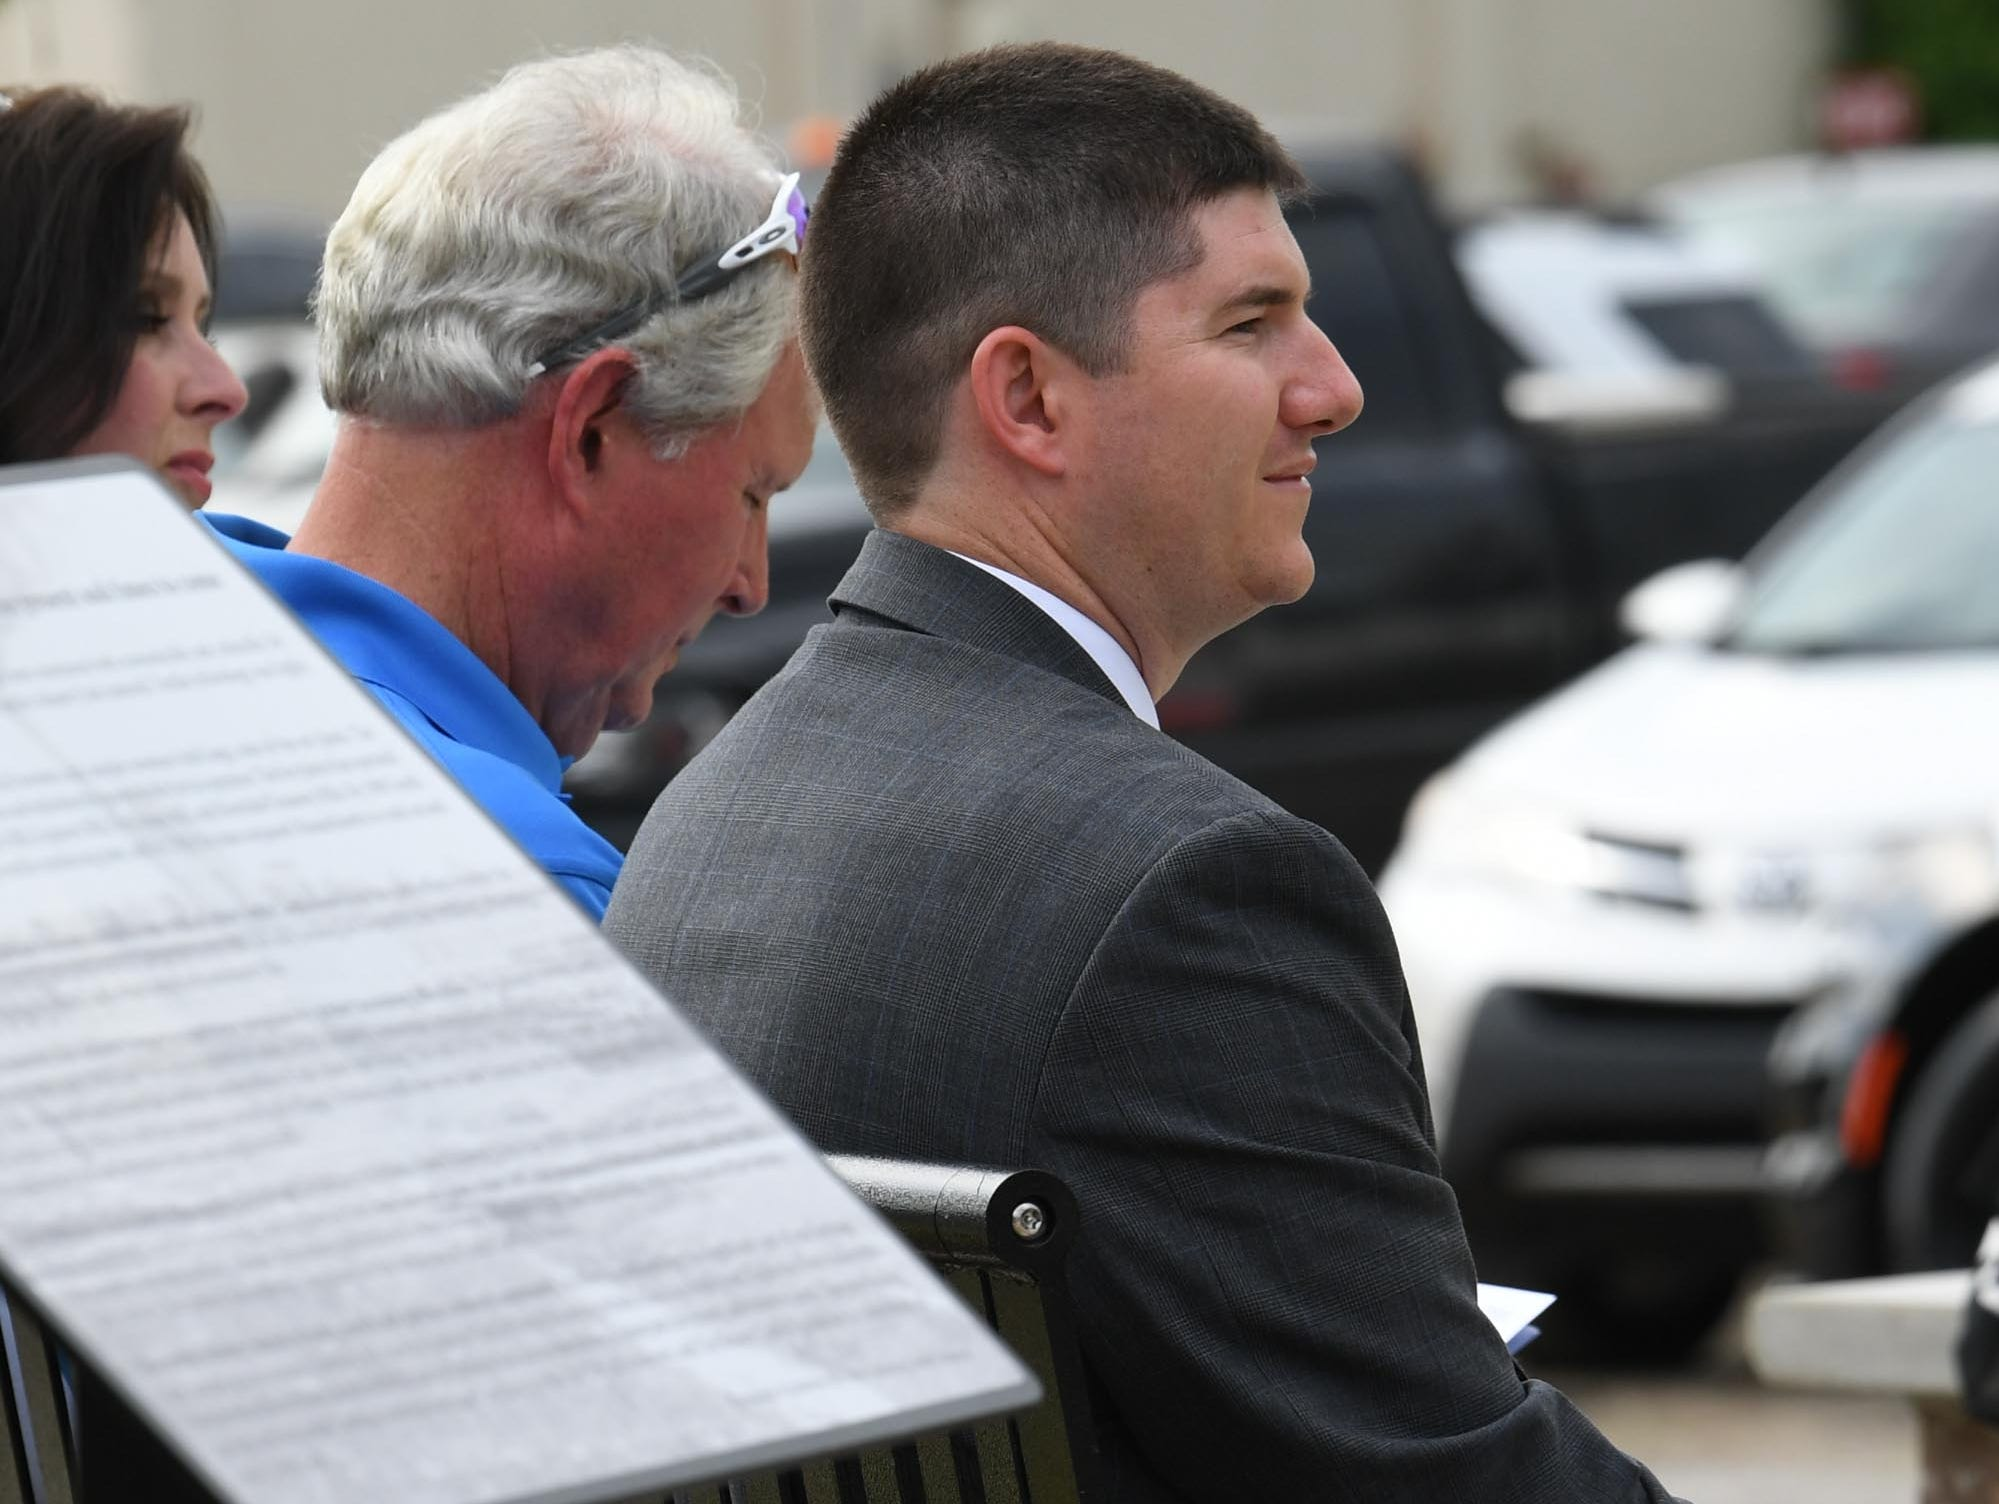 City Manager David McCuen listens to Mayor Terence Roberts speak before unveiling the Under the bridge project called Textile Point in downtown Anderson Thursday, May 9, 2019. Scott Foster of Anderson designed the monument honoring years of textile mills in Anderson, with support partners from To Benefit Anderson, South Carolina Heritage Corridor, the Rotary Club of Anderson, and the City of Anderson.